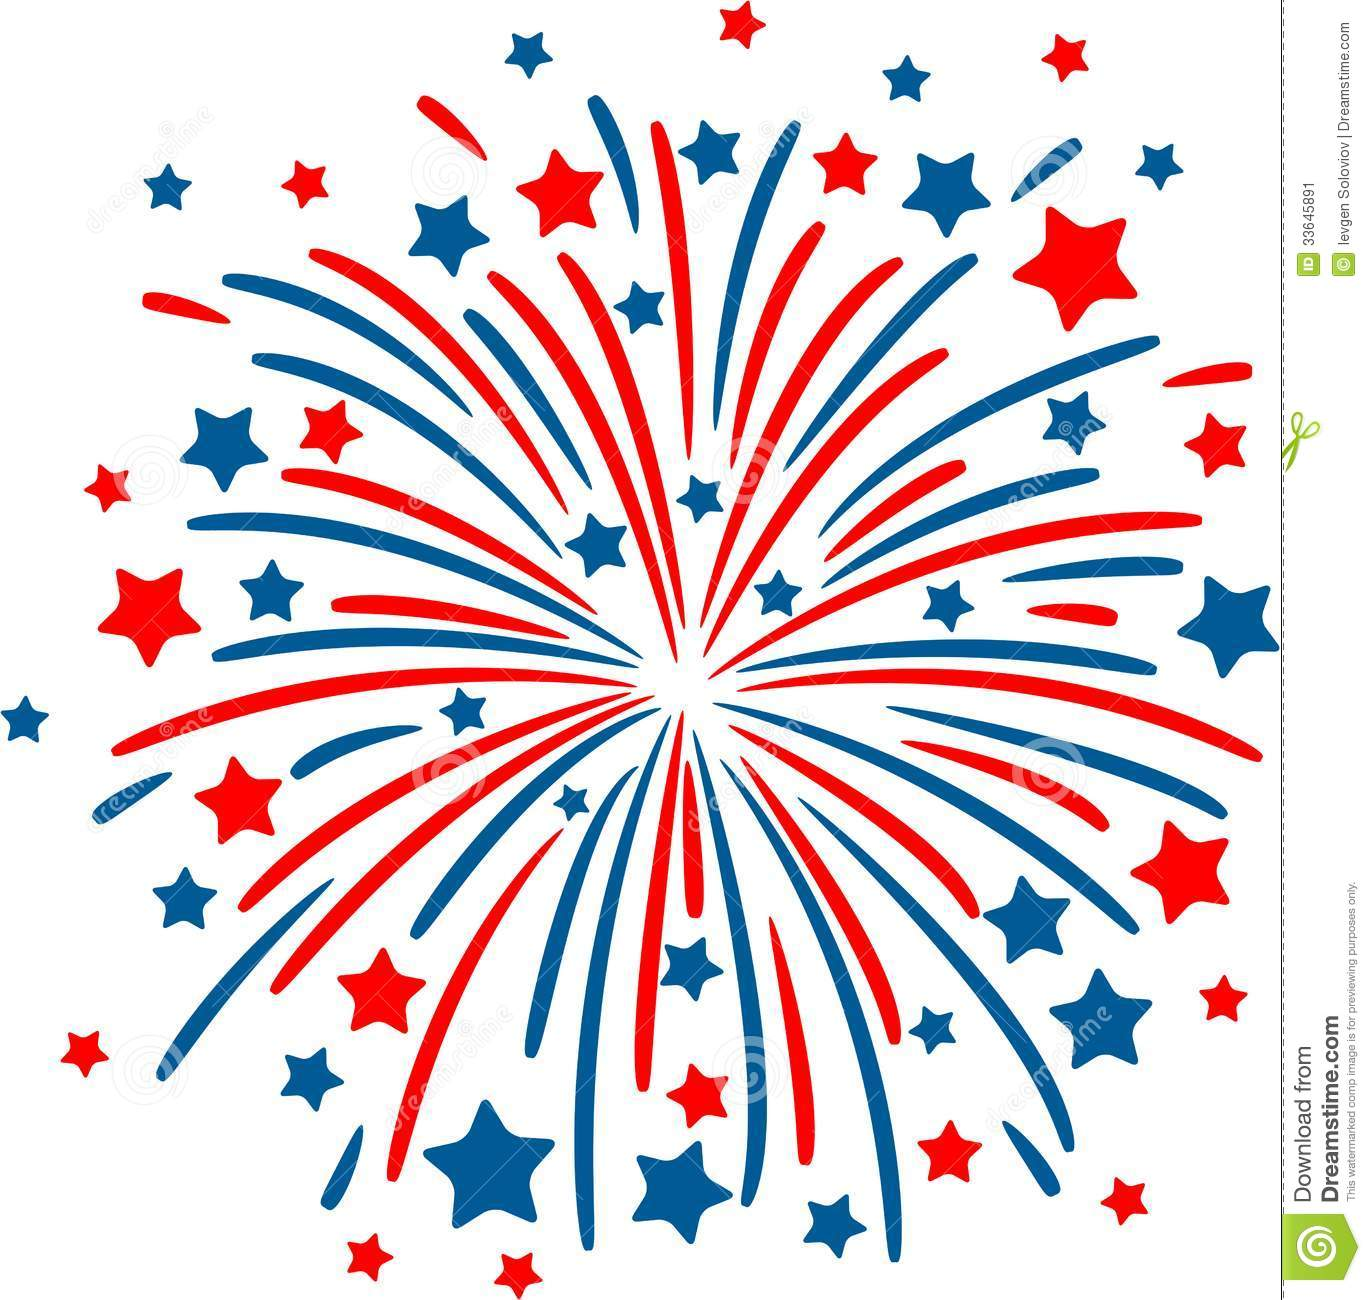 Fireworks clipart #18, Download drawings